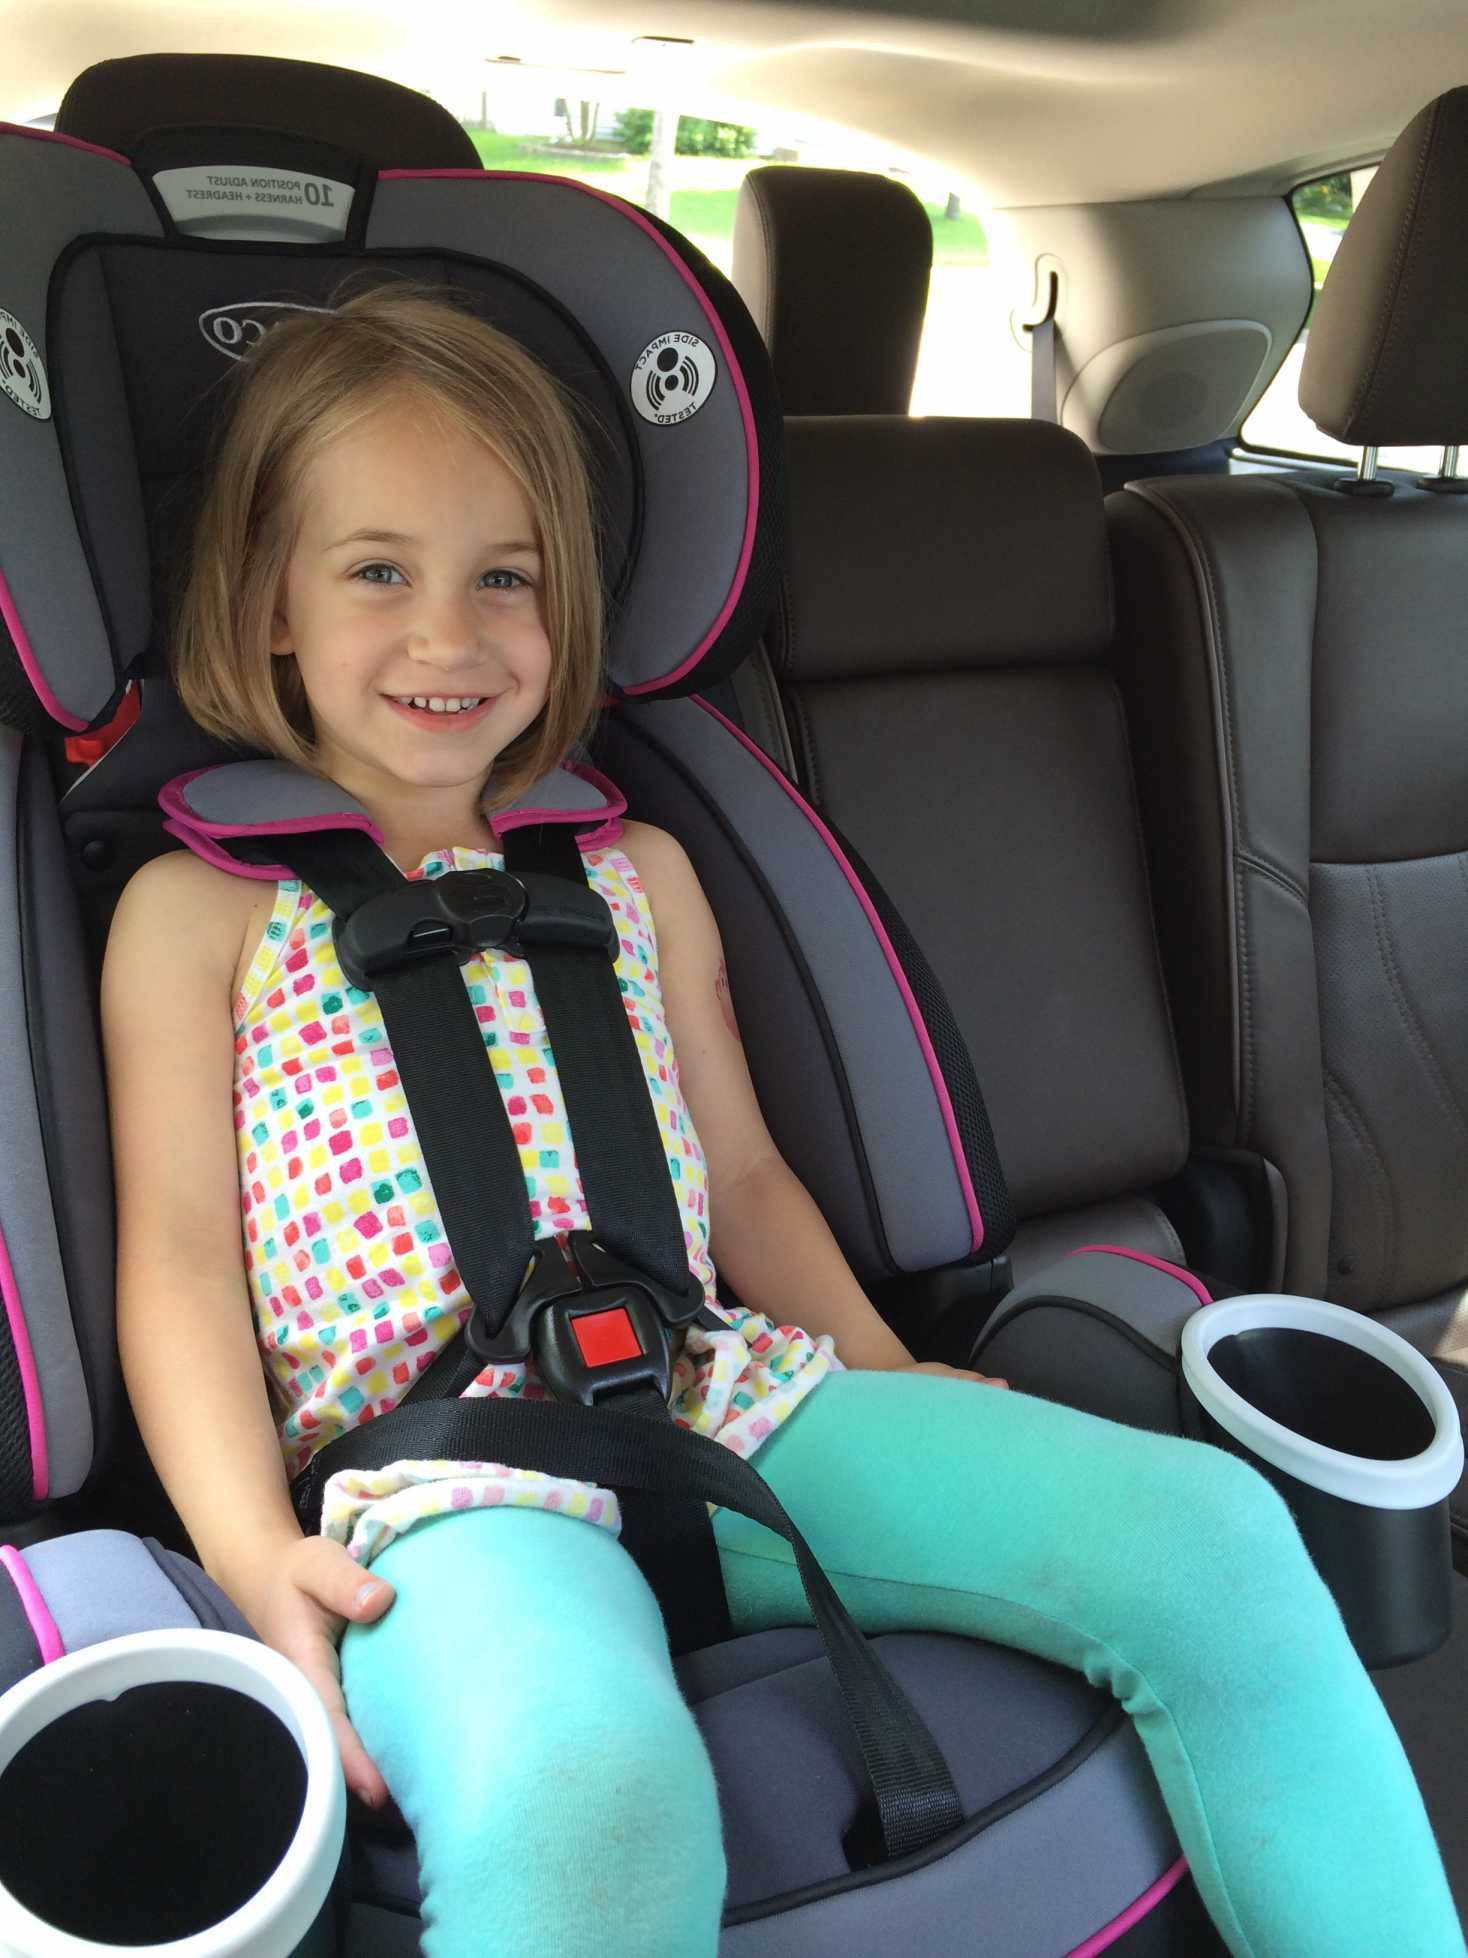 For children weighing 22 to 40 pounds the Evenflo Advanced Chase LX seat is designed to be used with the 5-point harness. - Evenflo Advanced Chase LX Reviews | Babyjourney